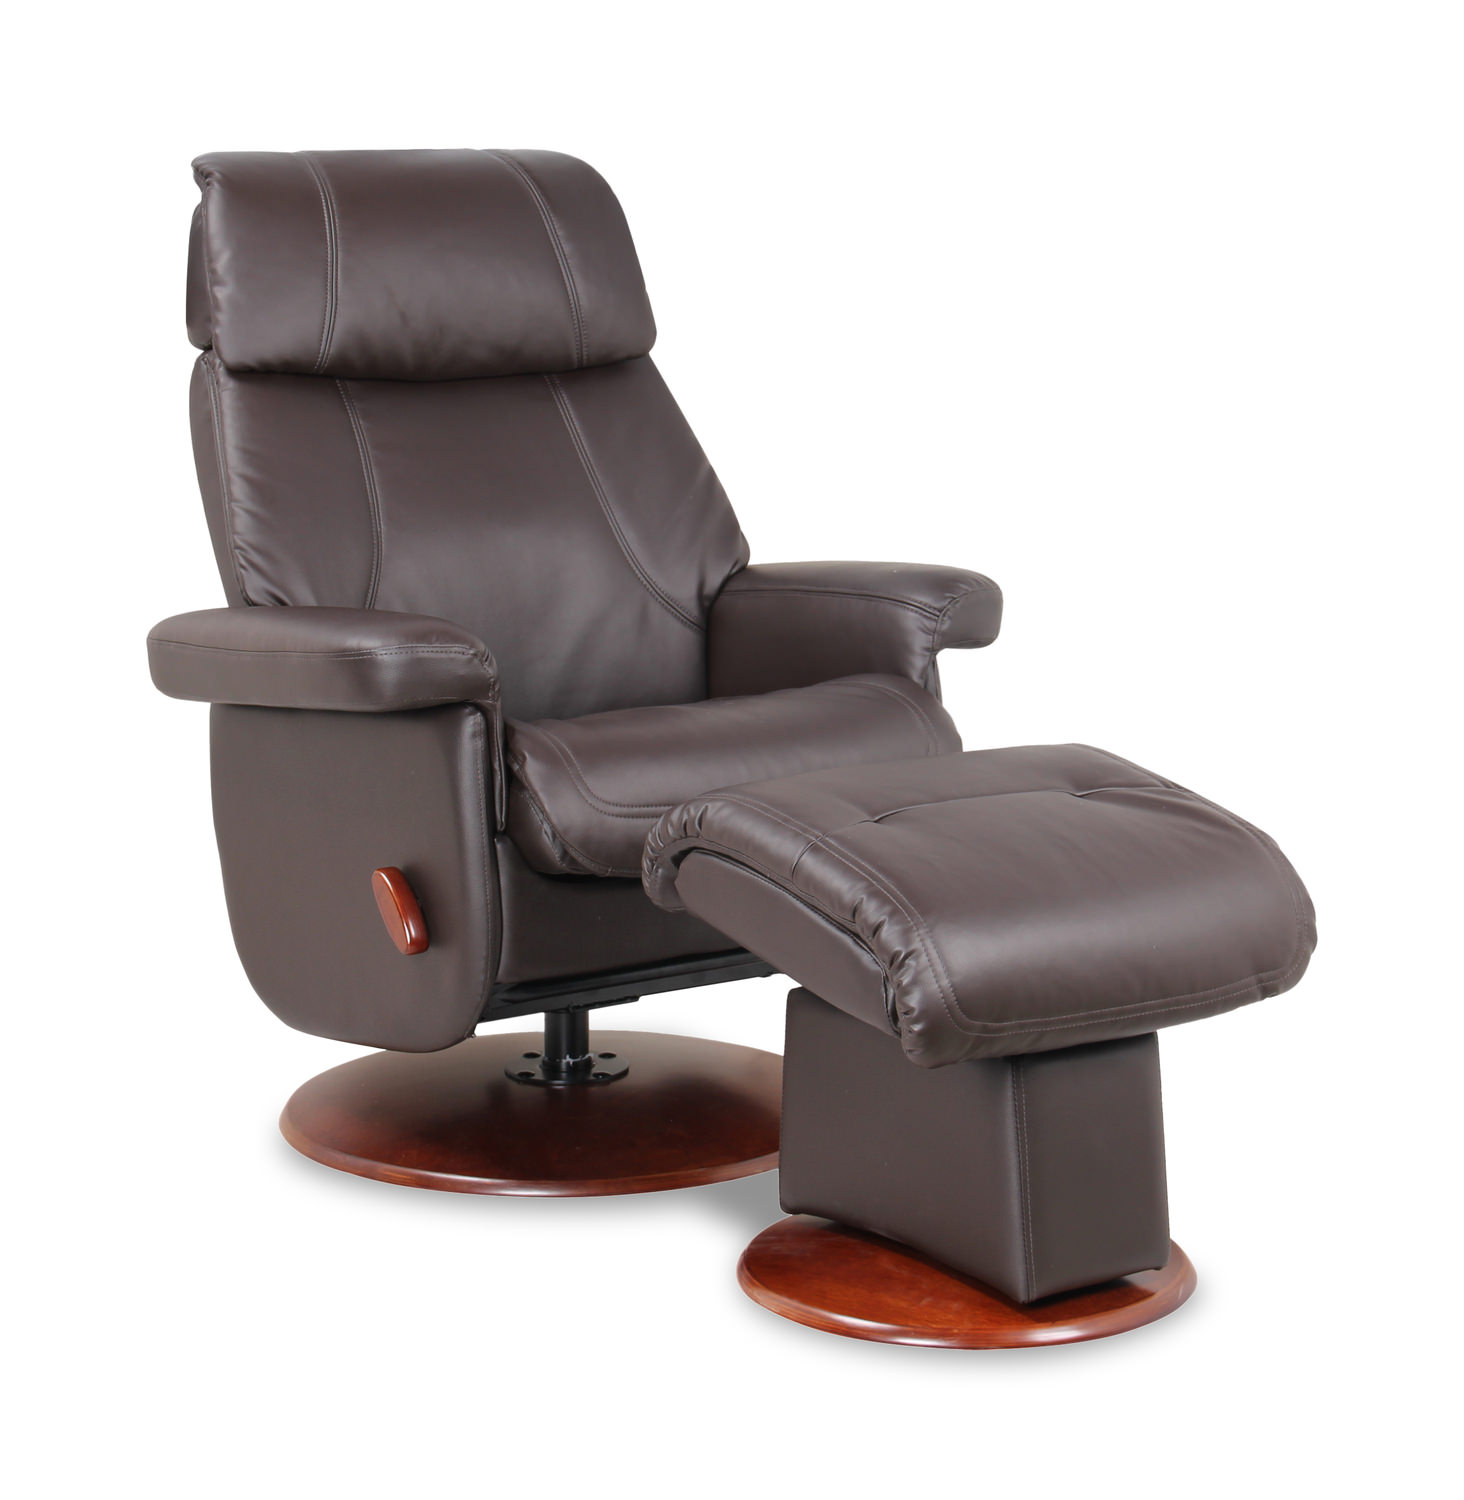 sergei swivel recliner